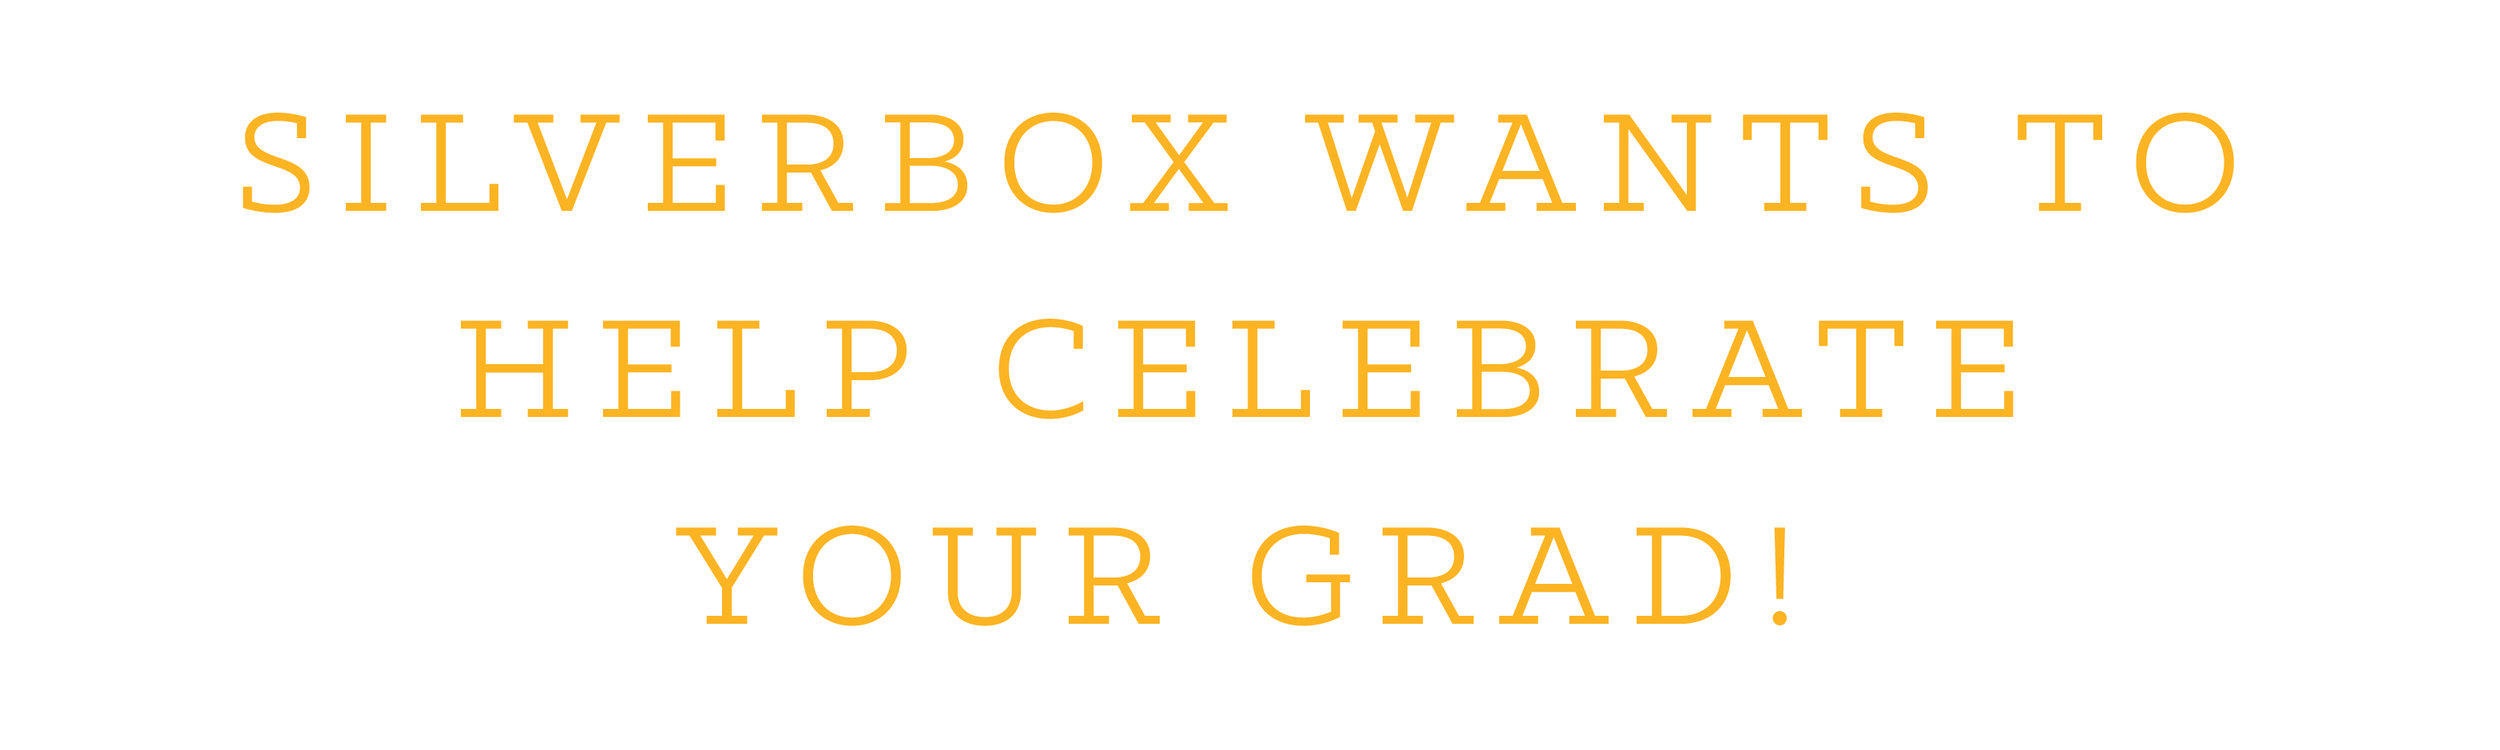 SilverBox wants to help celebrate your grad!